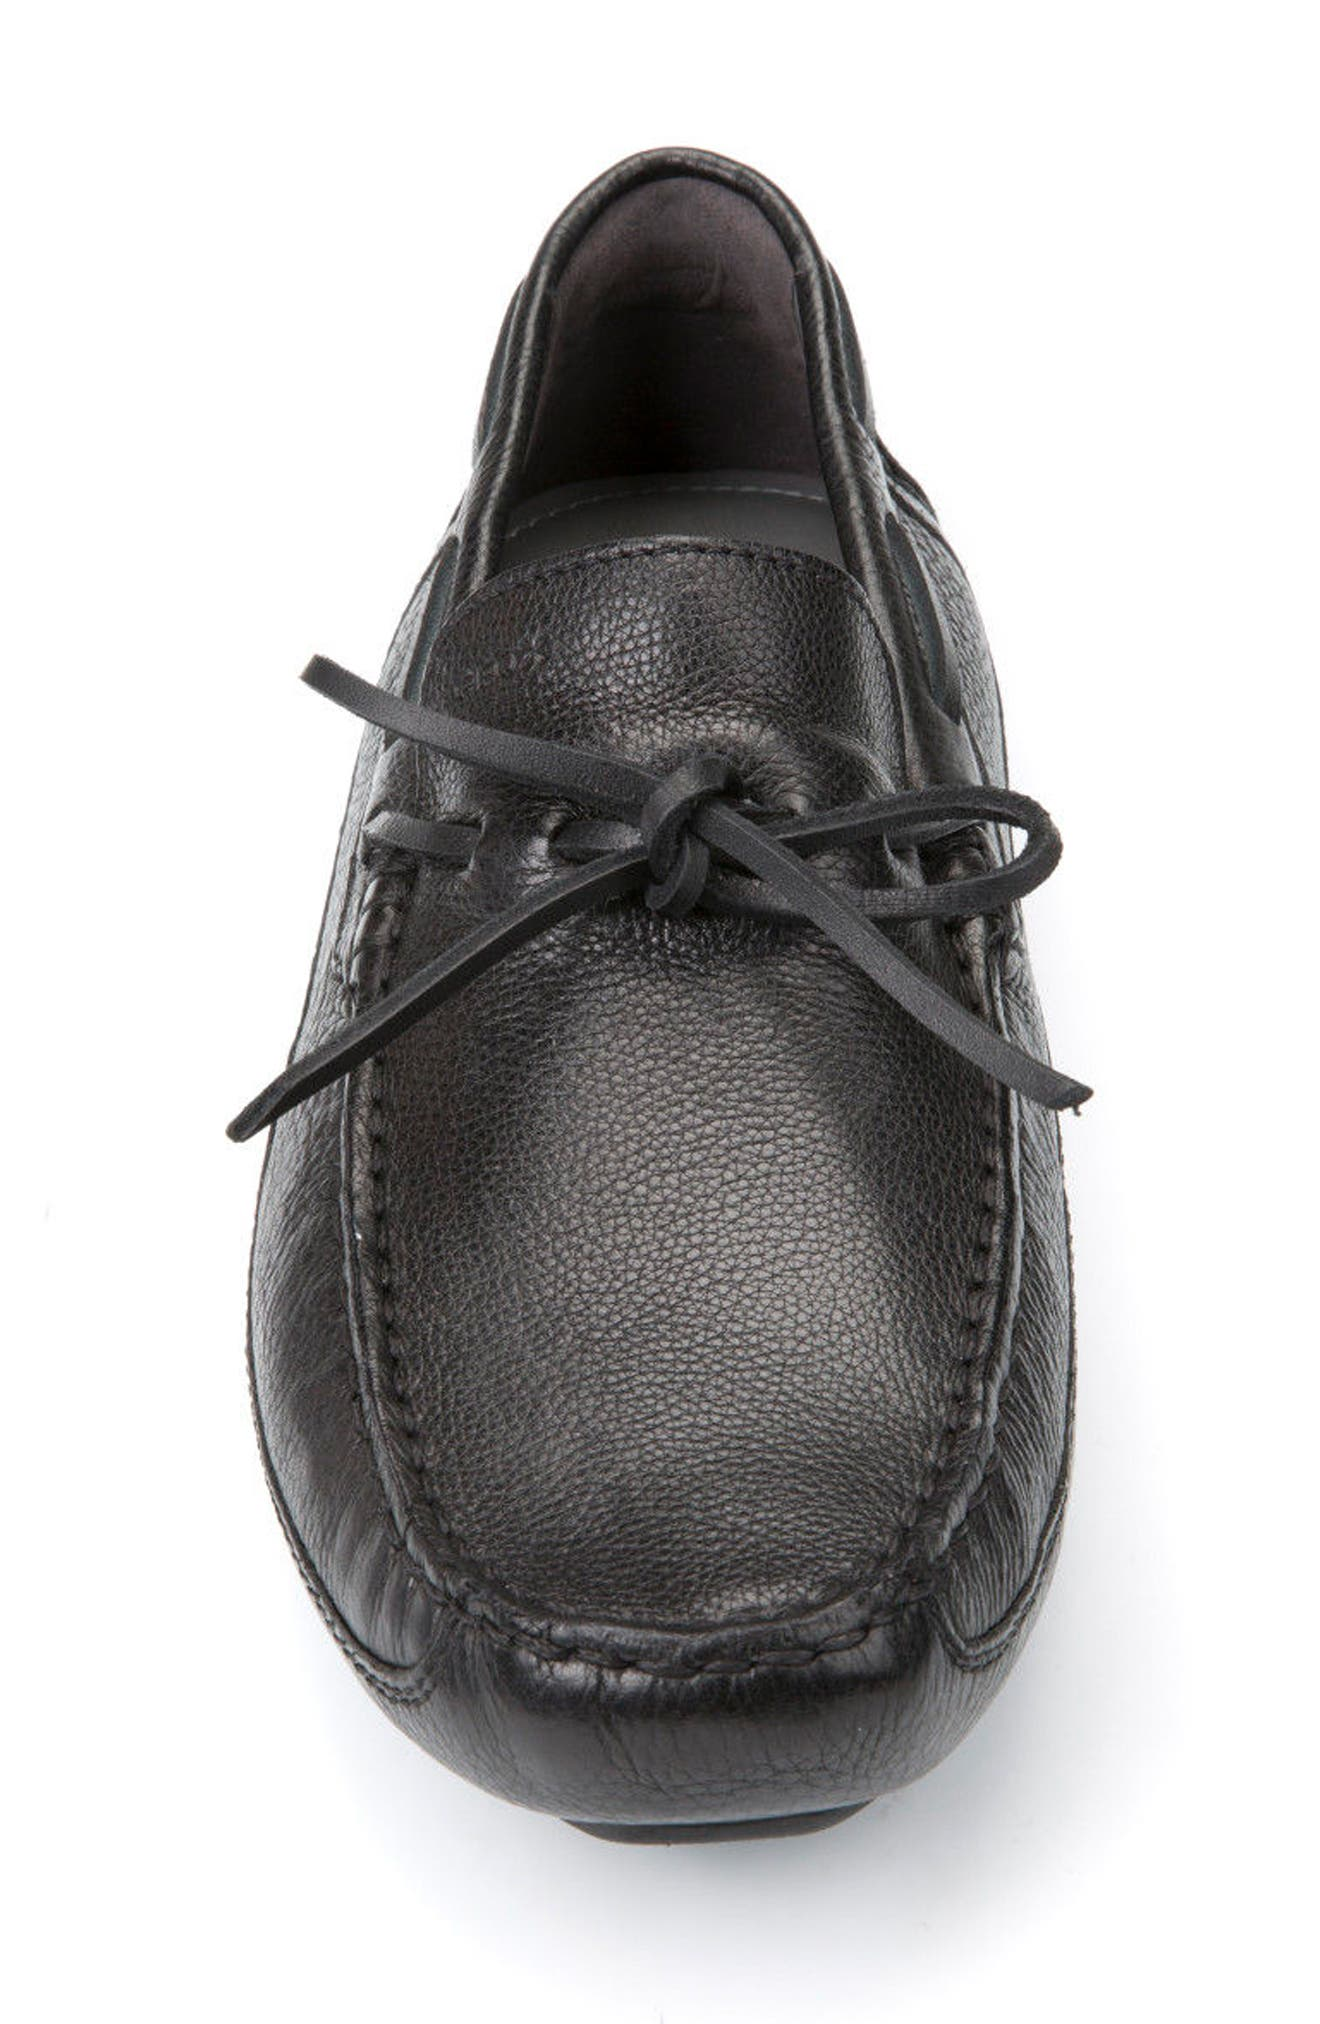 Melbourne 5 Driving Shoe,                             Alternate thumbnail 4, color,                             Black Leather